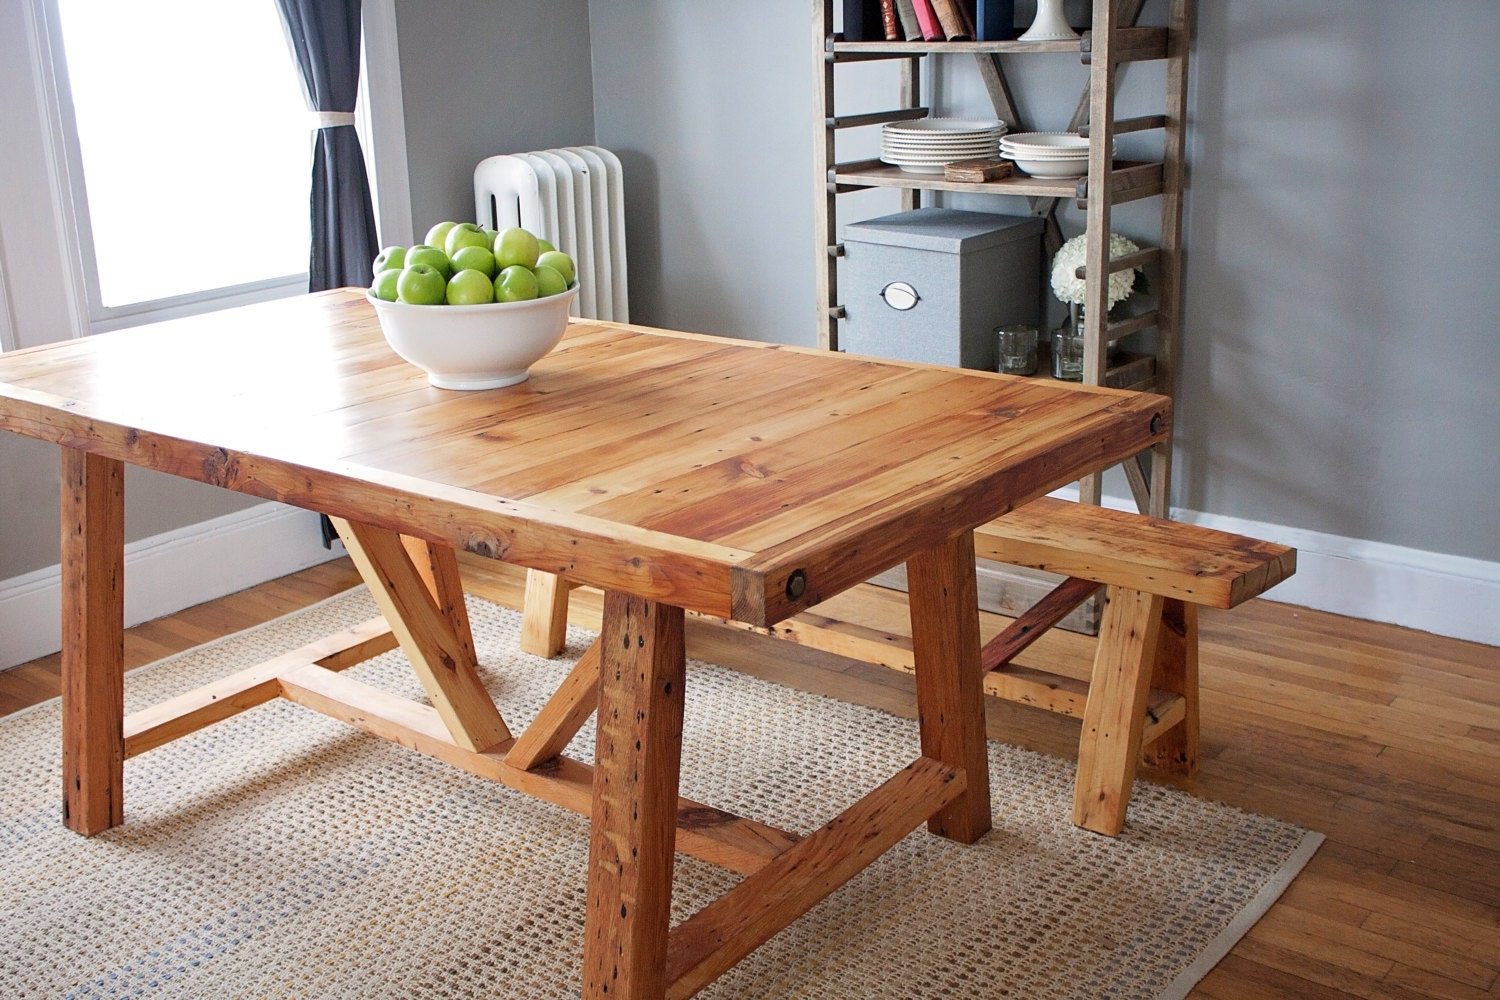 Reclaimed wood farmhouse dining table and bench by for Wood dining table decor